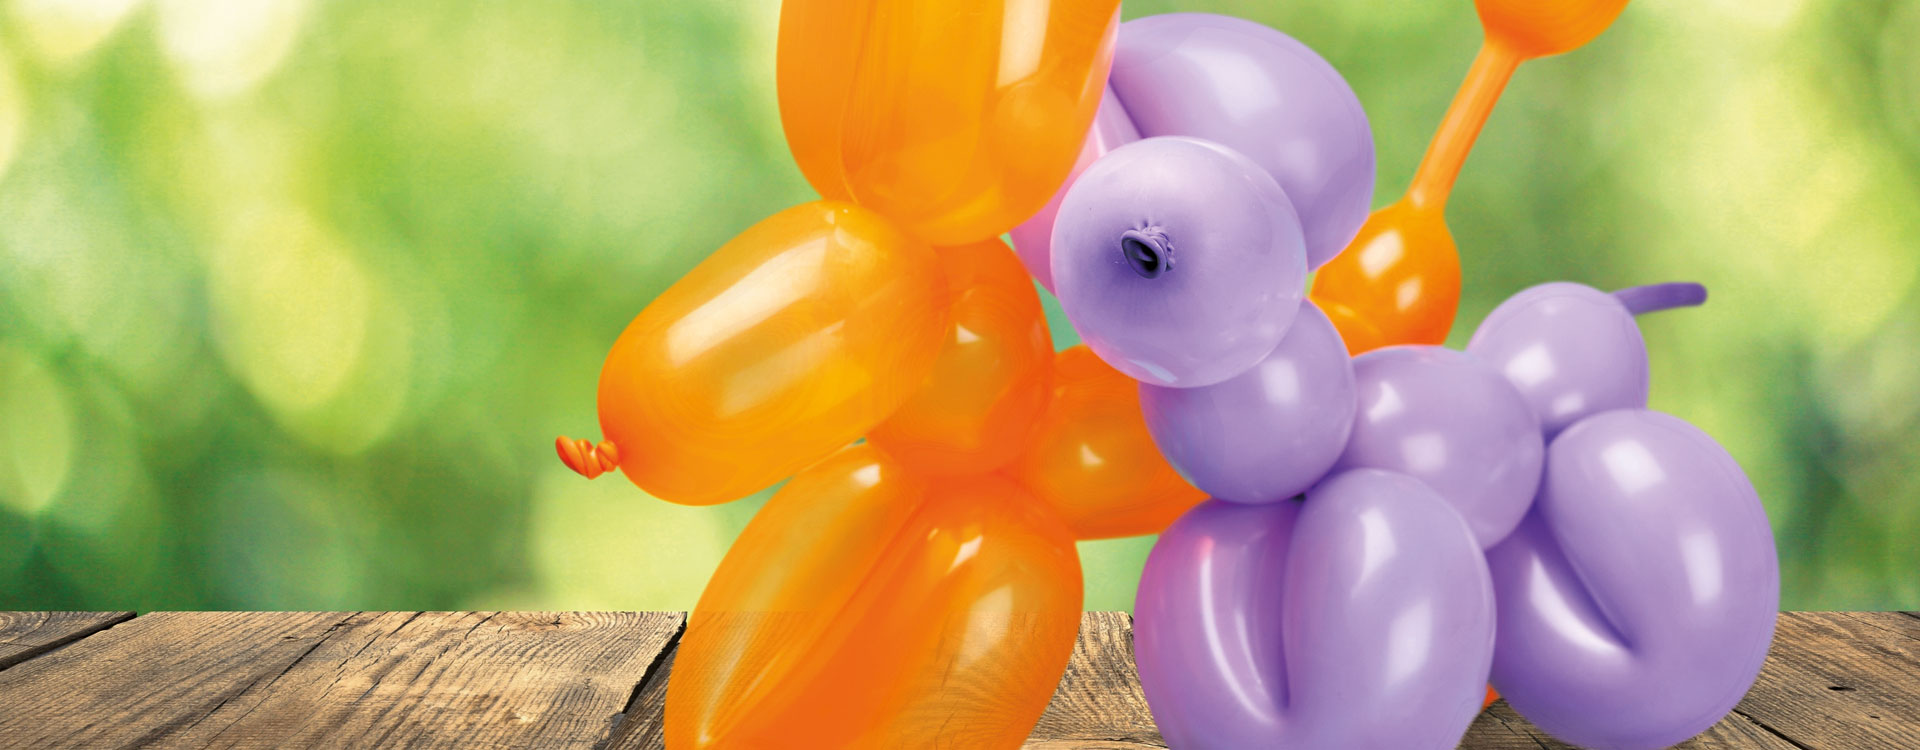 animations chien en ballons